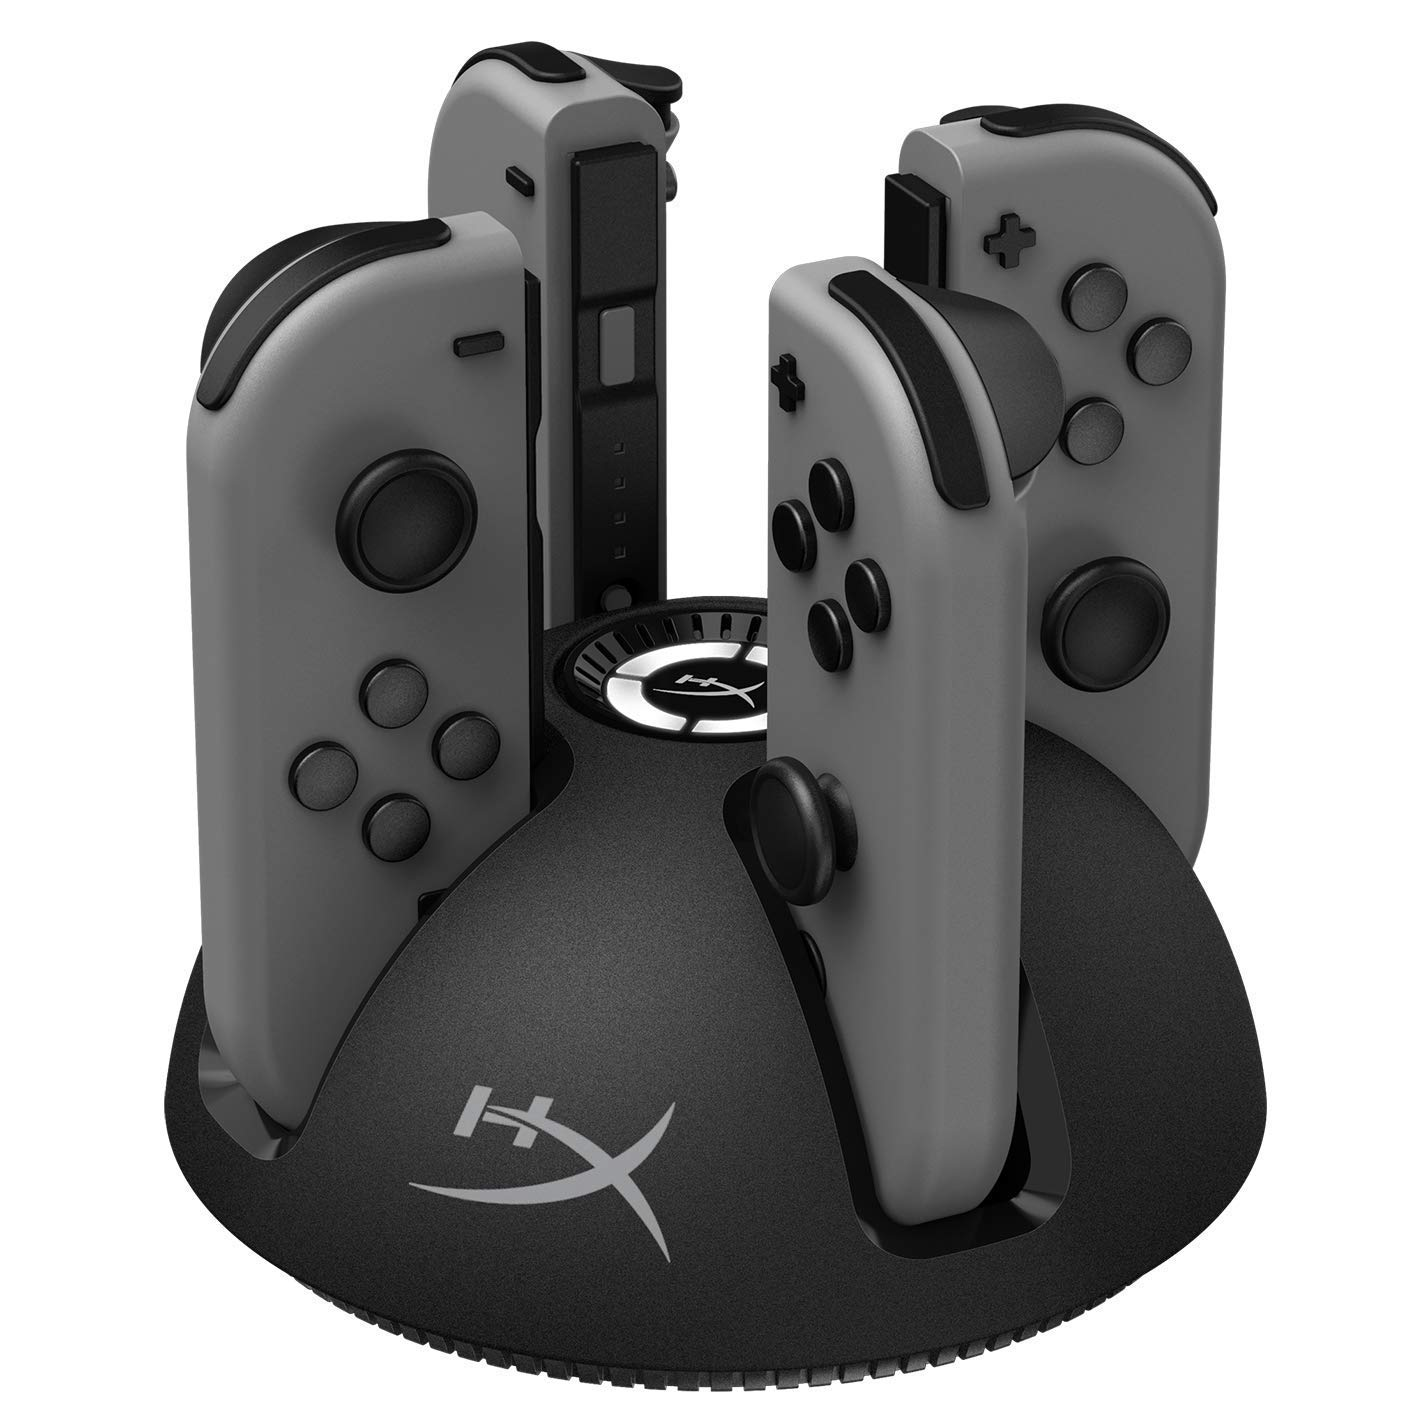 HyperX Chargeplay Quad - 4-in-1 Joy-Con Charging Station for Nintendo Switch with LED Indicators, USB Connection